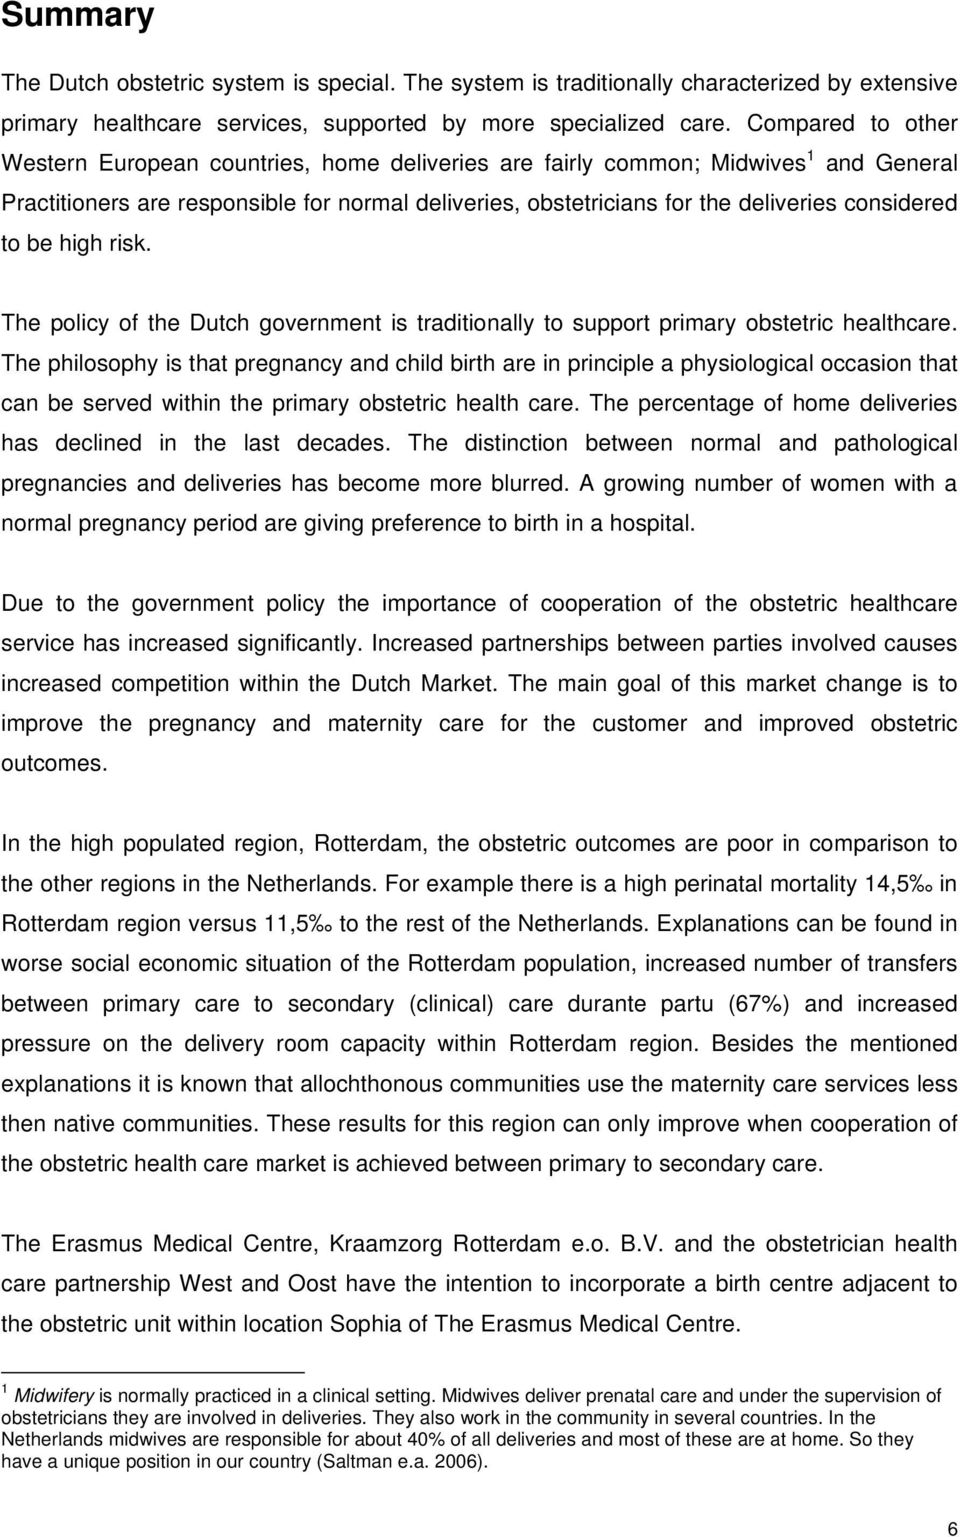 considered to be high risk. The policy of the Dutch government is traditionally to support primary obstetric healthcare.